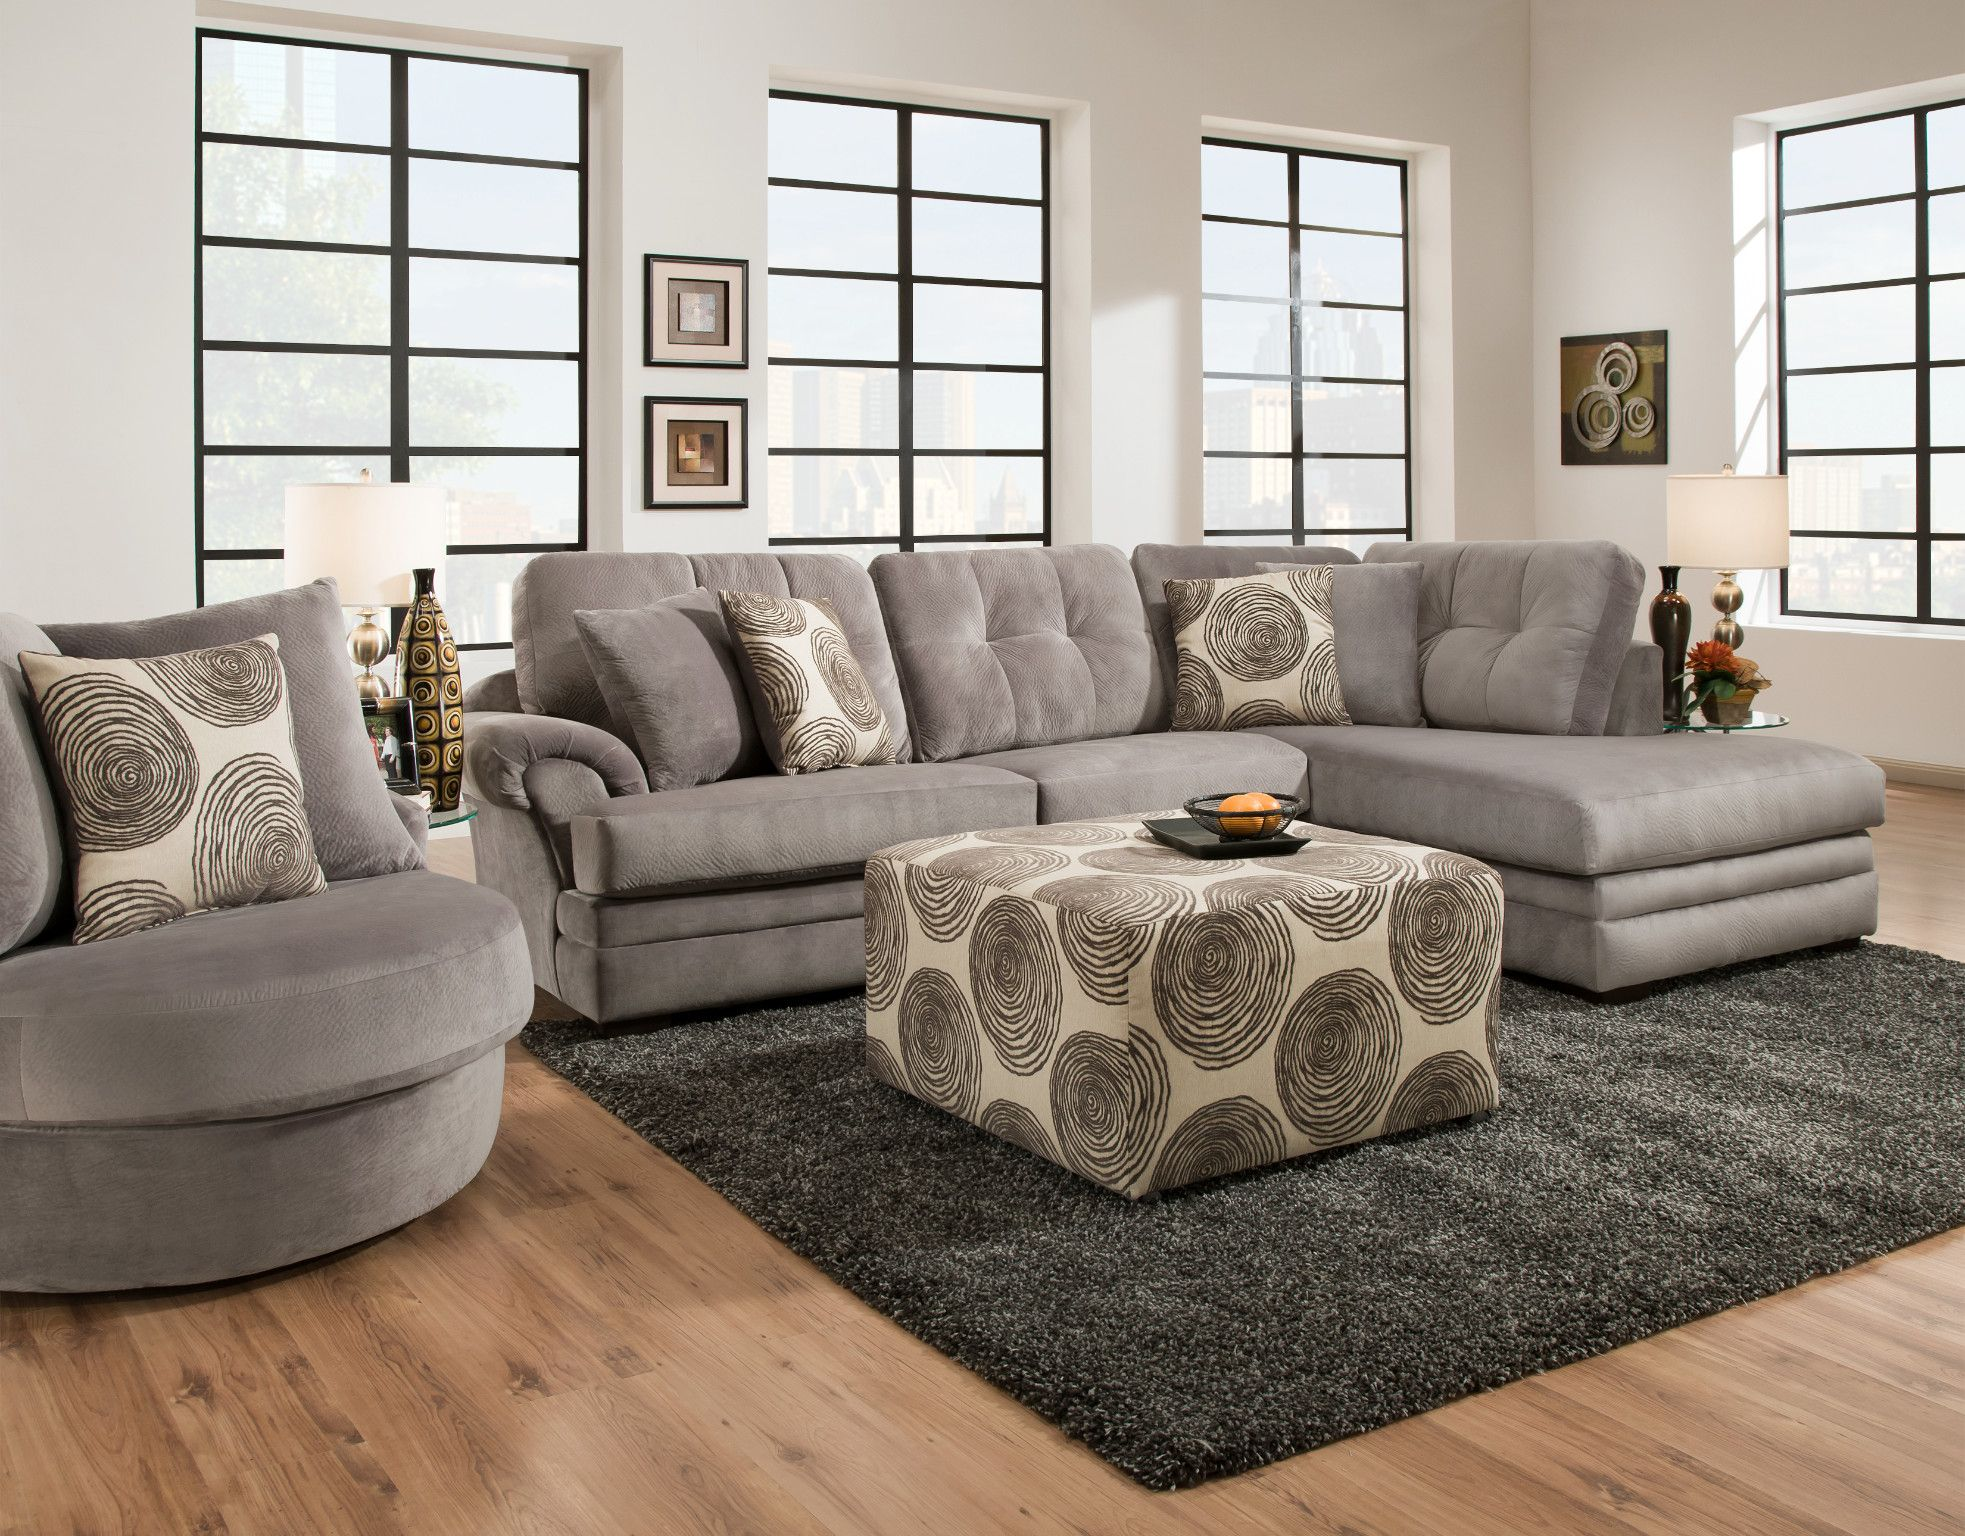 Knockout 2 Piece Sectional In Knockout Grey 16b3lf Left Facing Sofa L84 D Comfortable Living Room Furniture Sectional Sofa With Chaise Living Room Sectional